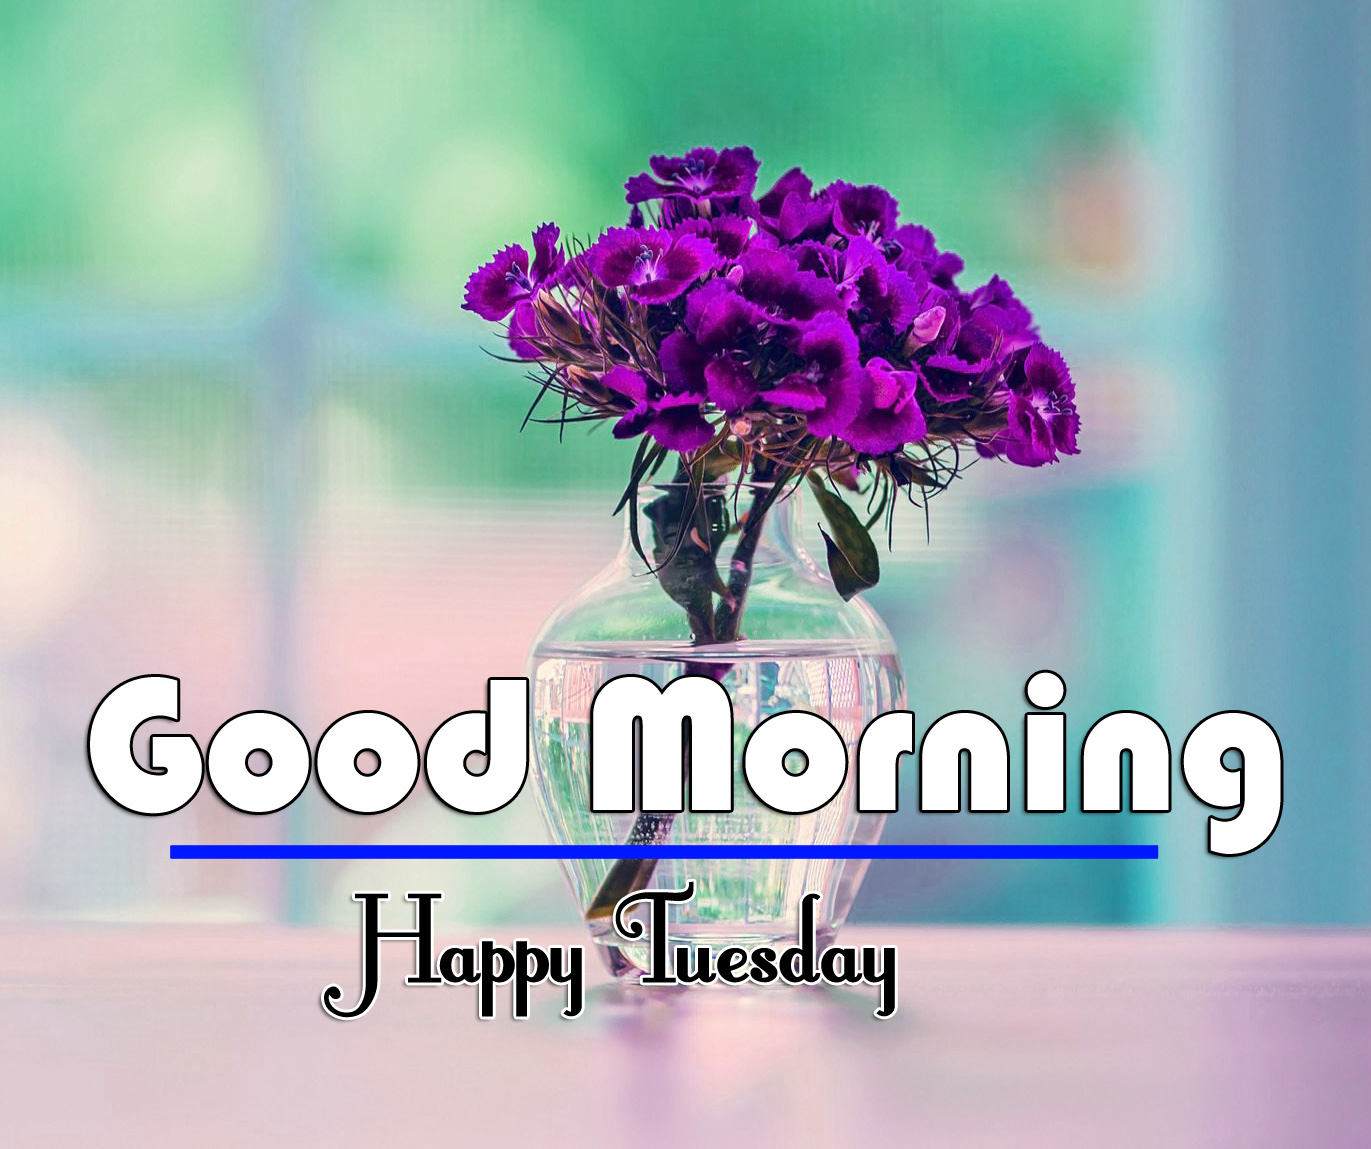 Good Morning Tuesday Images 6